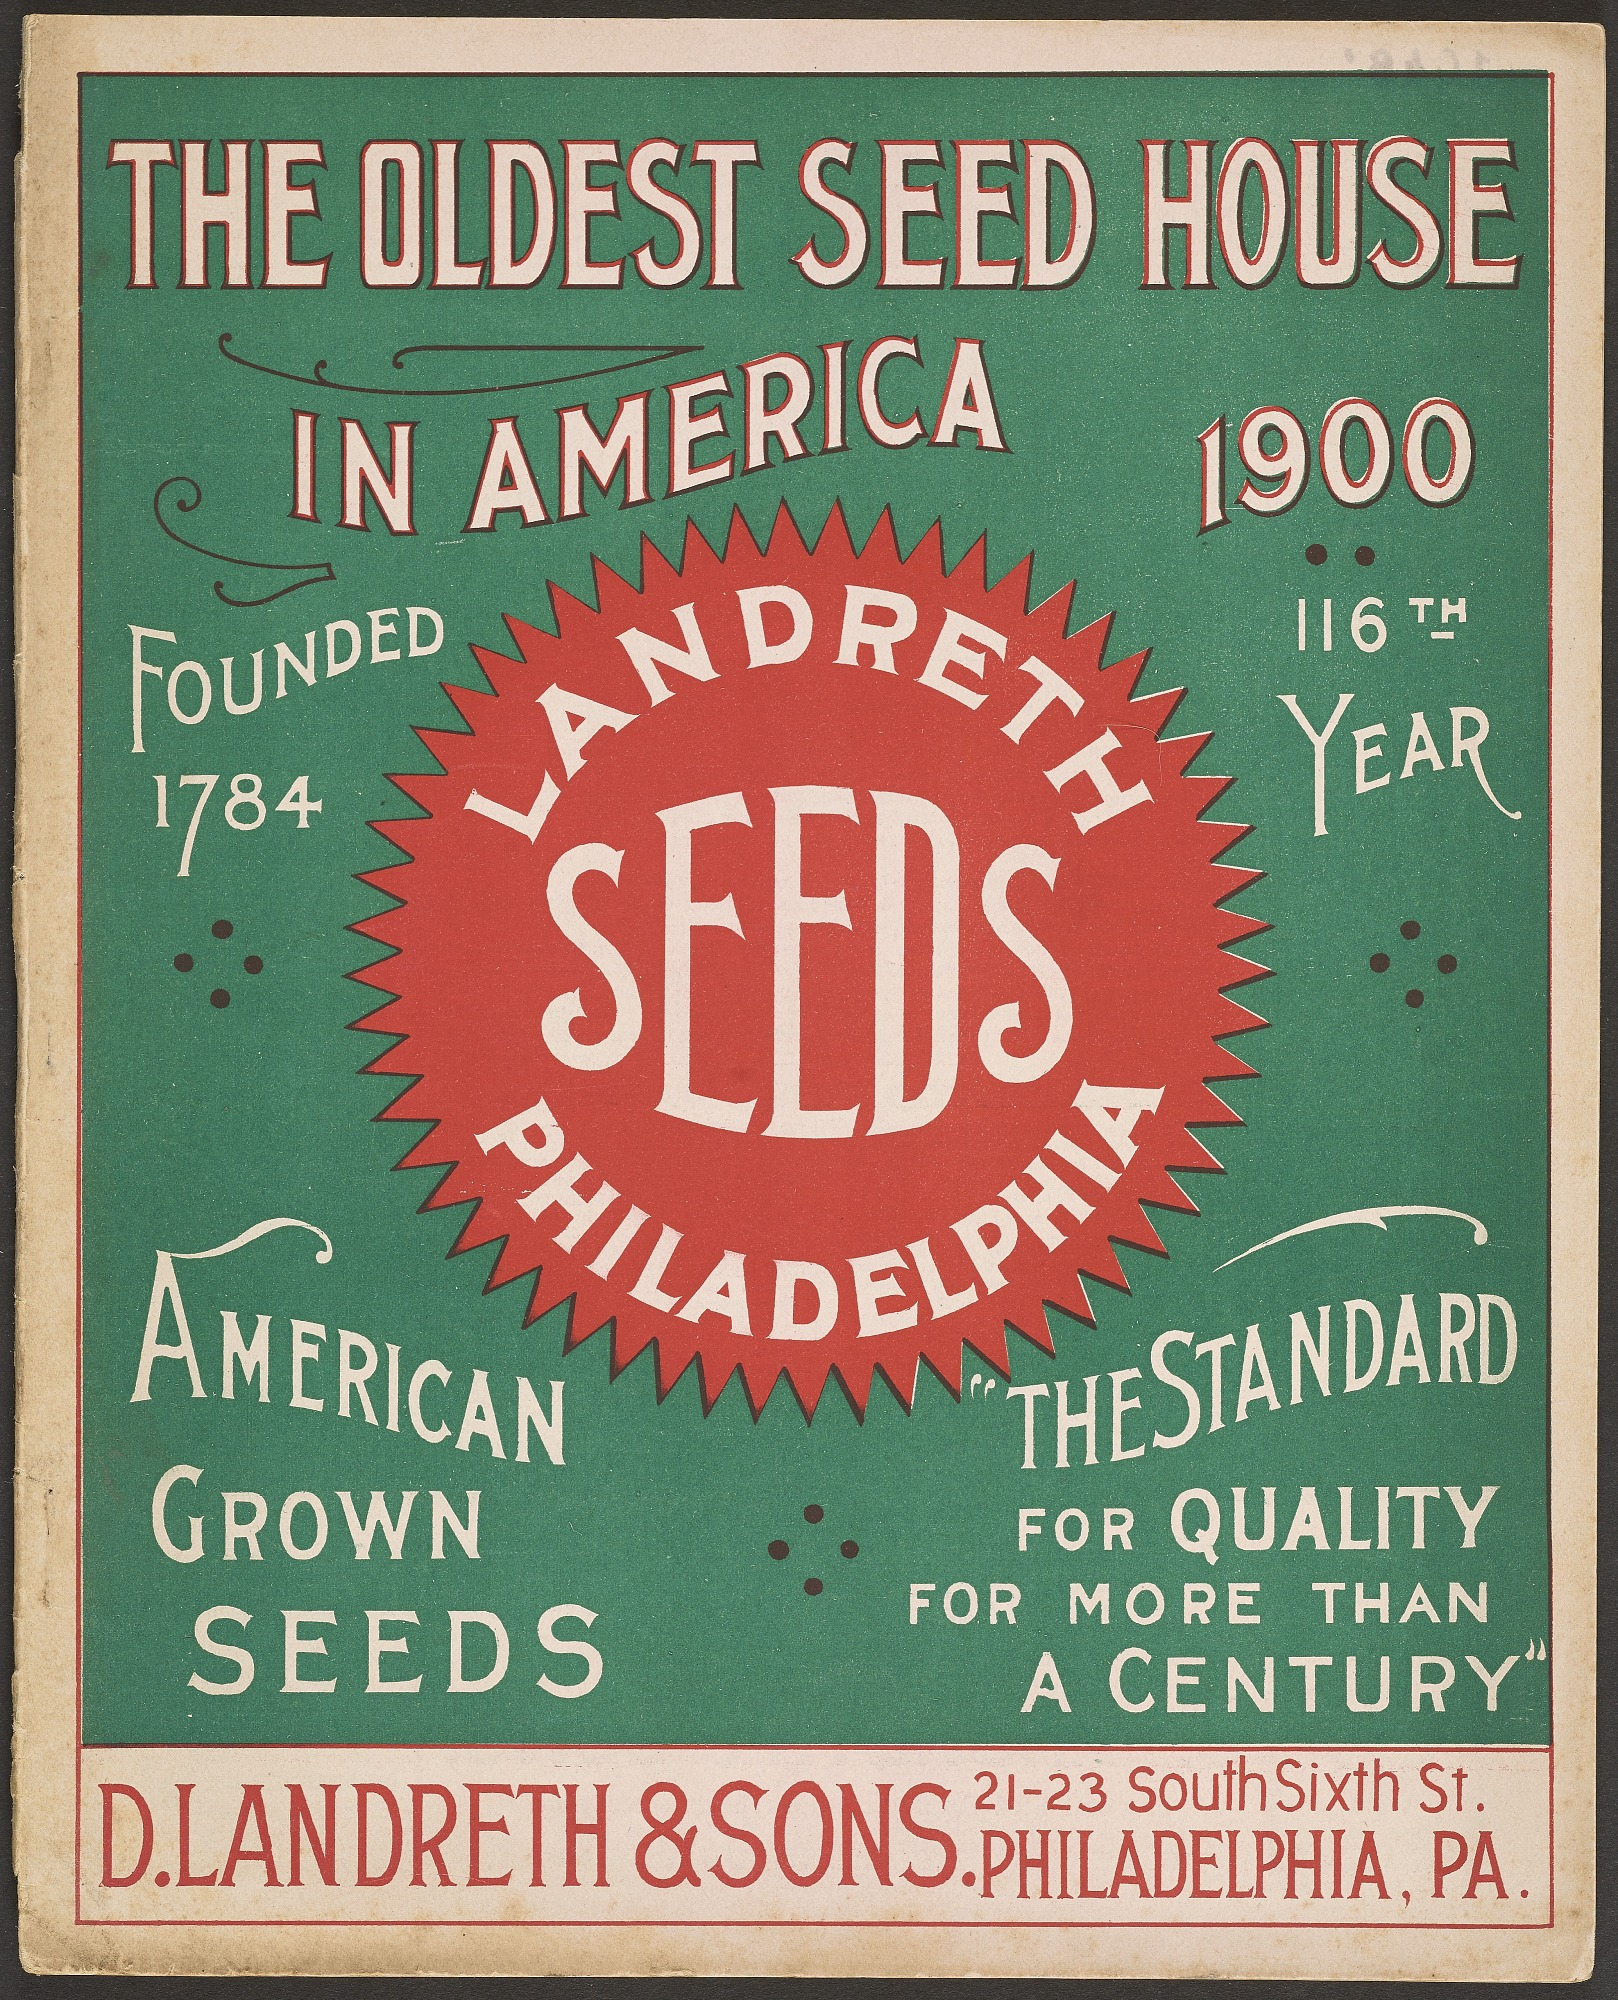 D. Landreth & Sons, Landreth Seeds, 1900